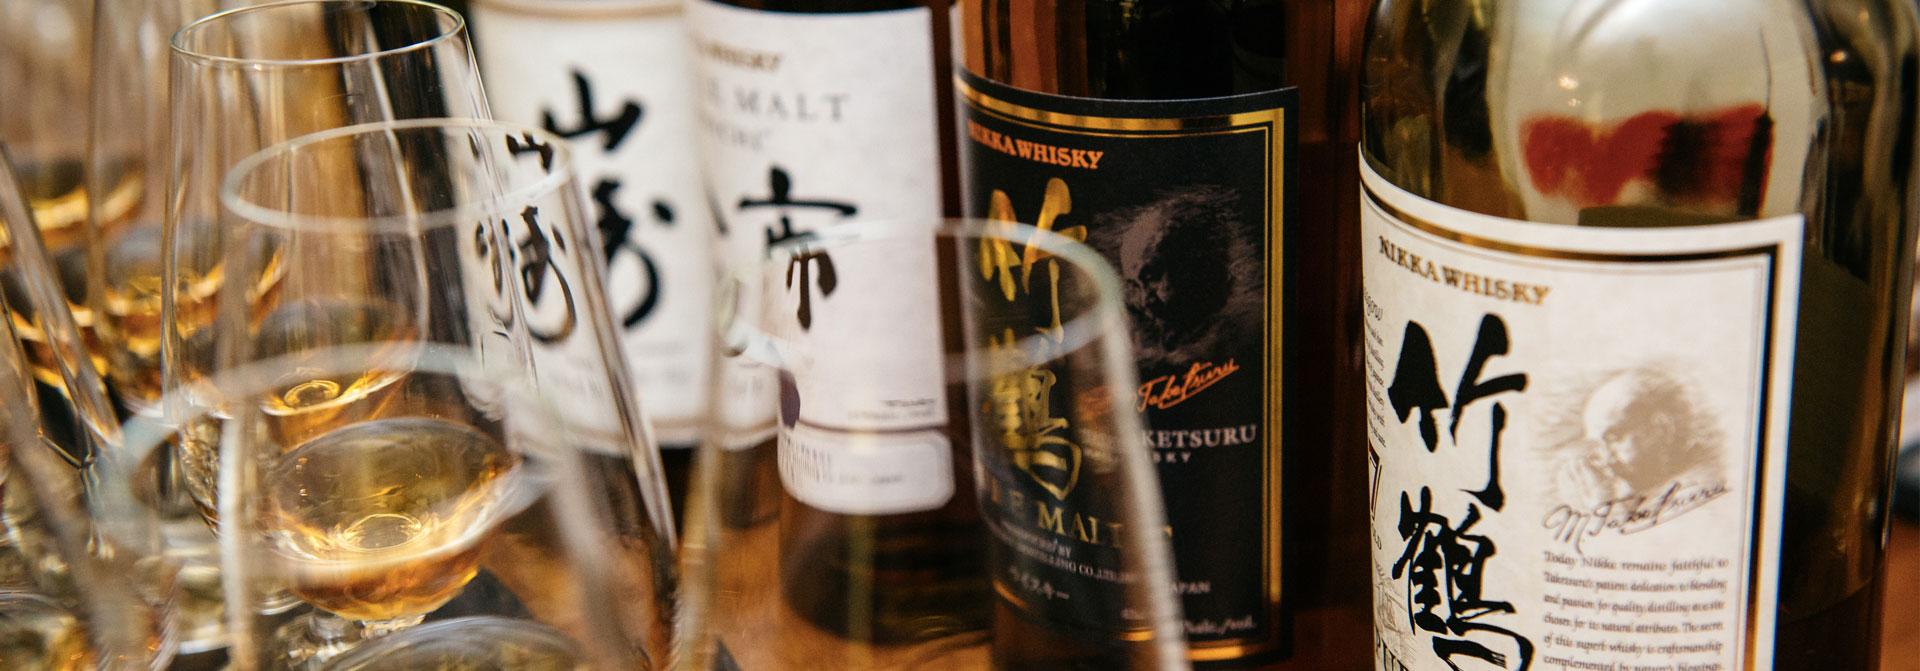 japanese whisky tasting the tasters club ουισκι